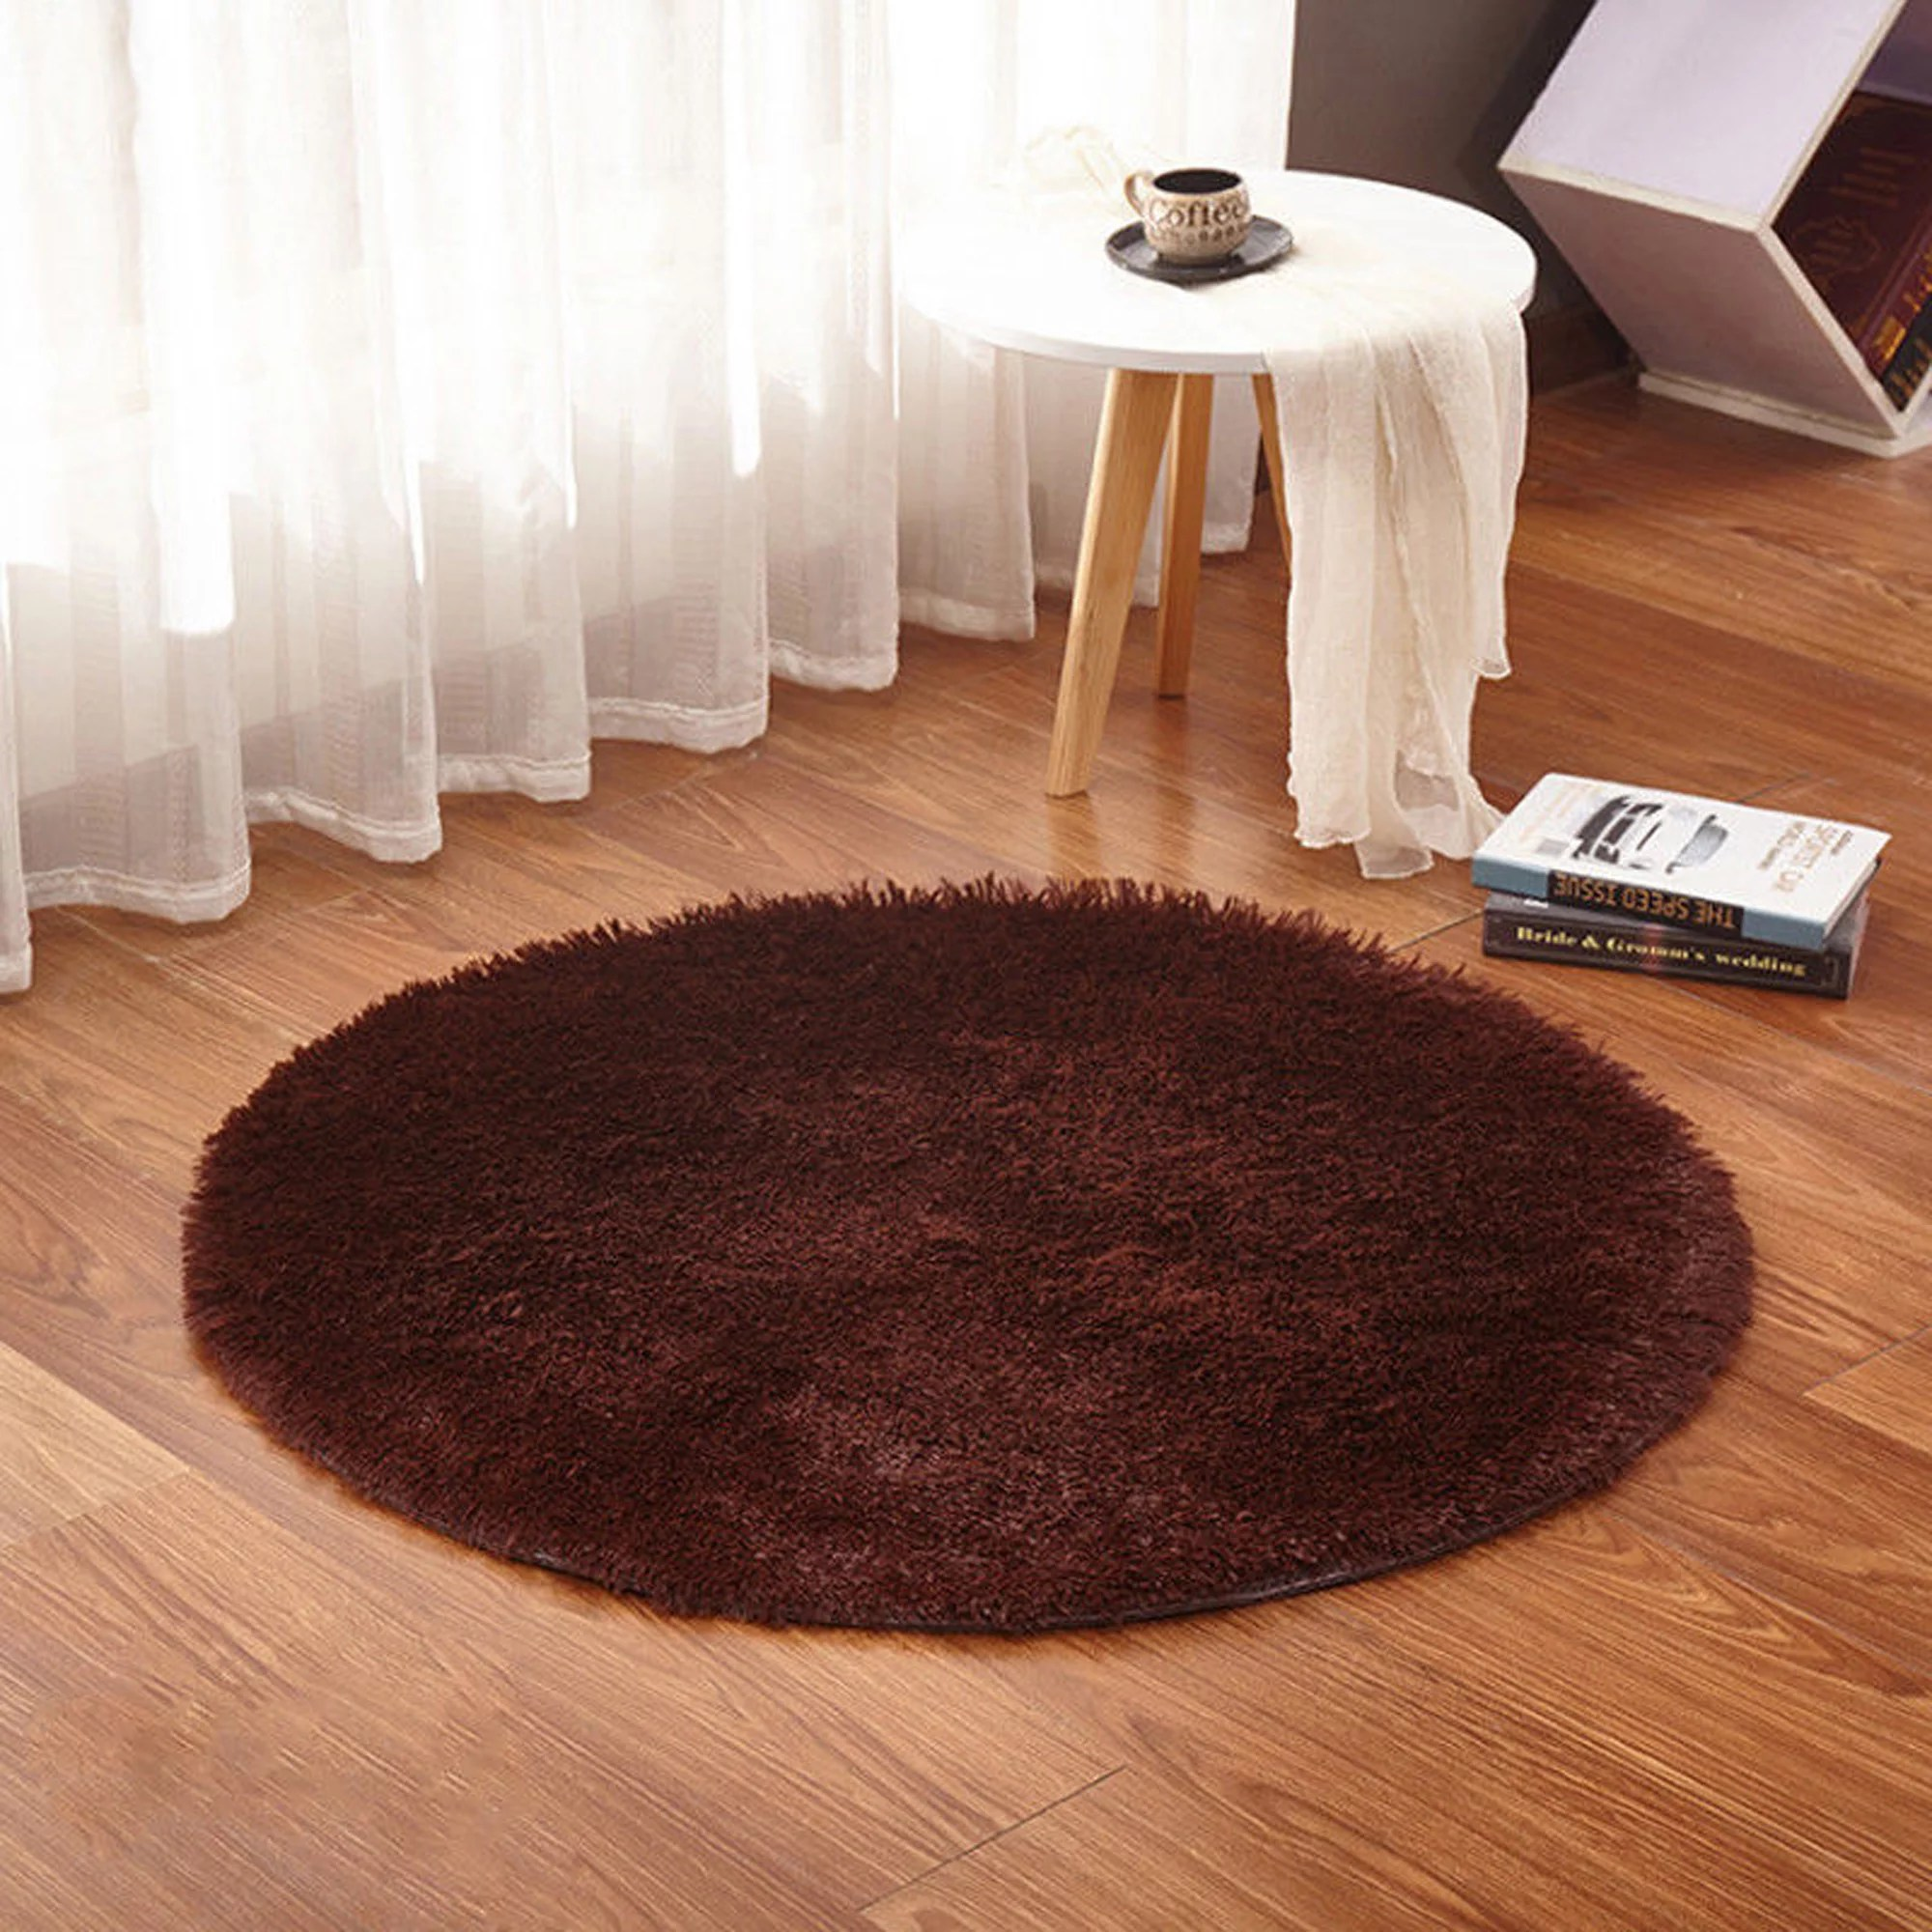 round area rug in living room oriental design nk home luxury rugs super soft bedroom carpet children playing mat diameter 3 feet walmart com